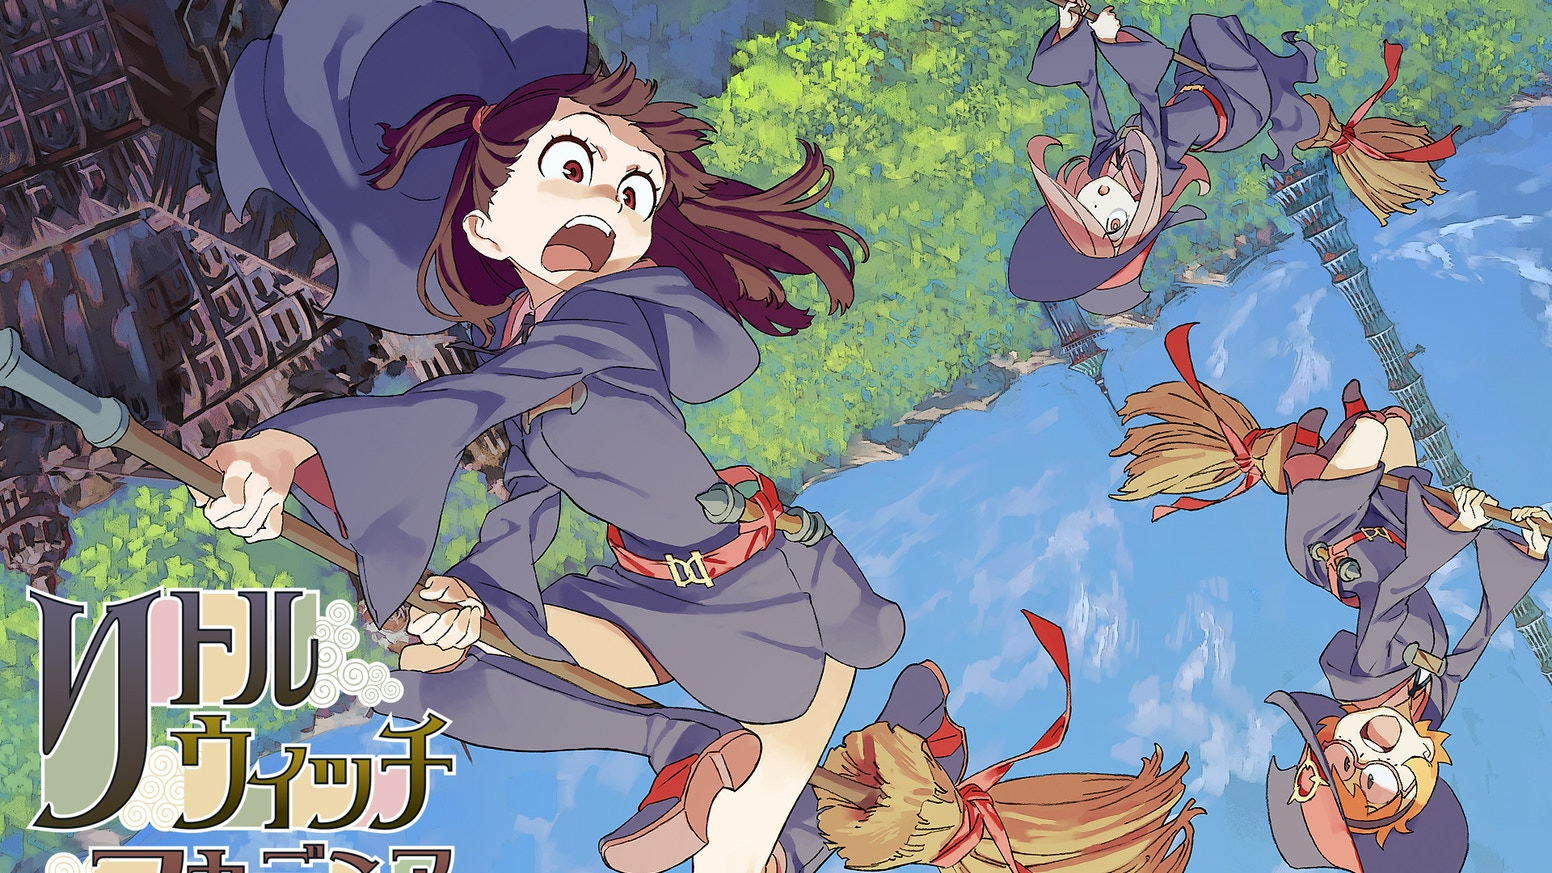 Little Witch Academia 2 By Studio Trigger Kickstarter